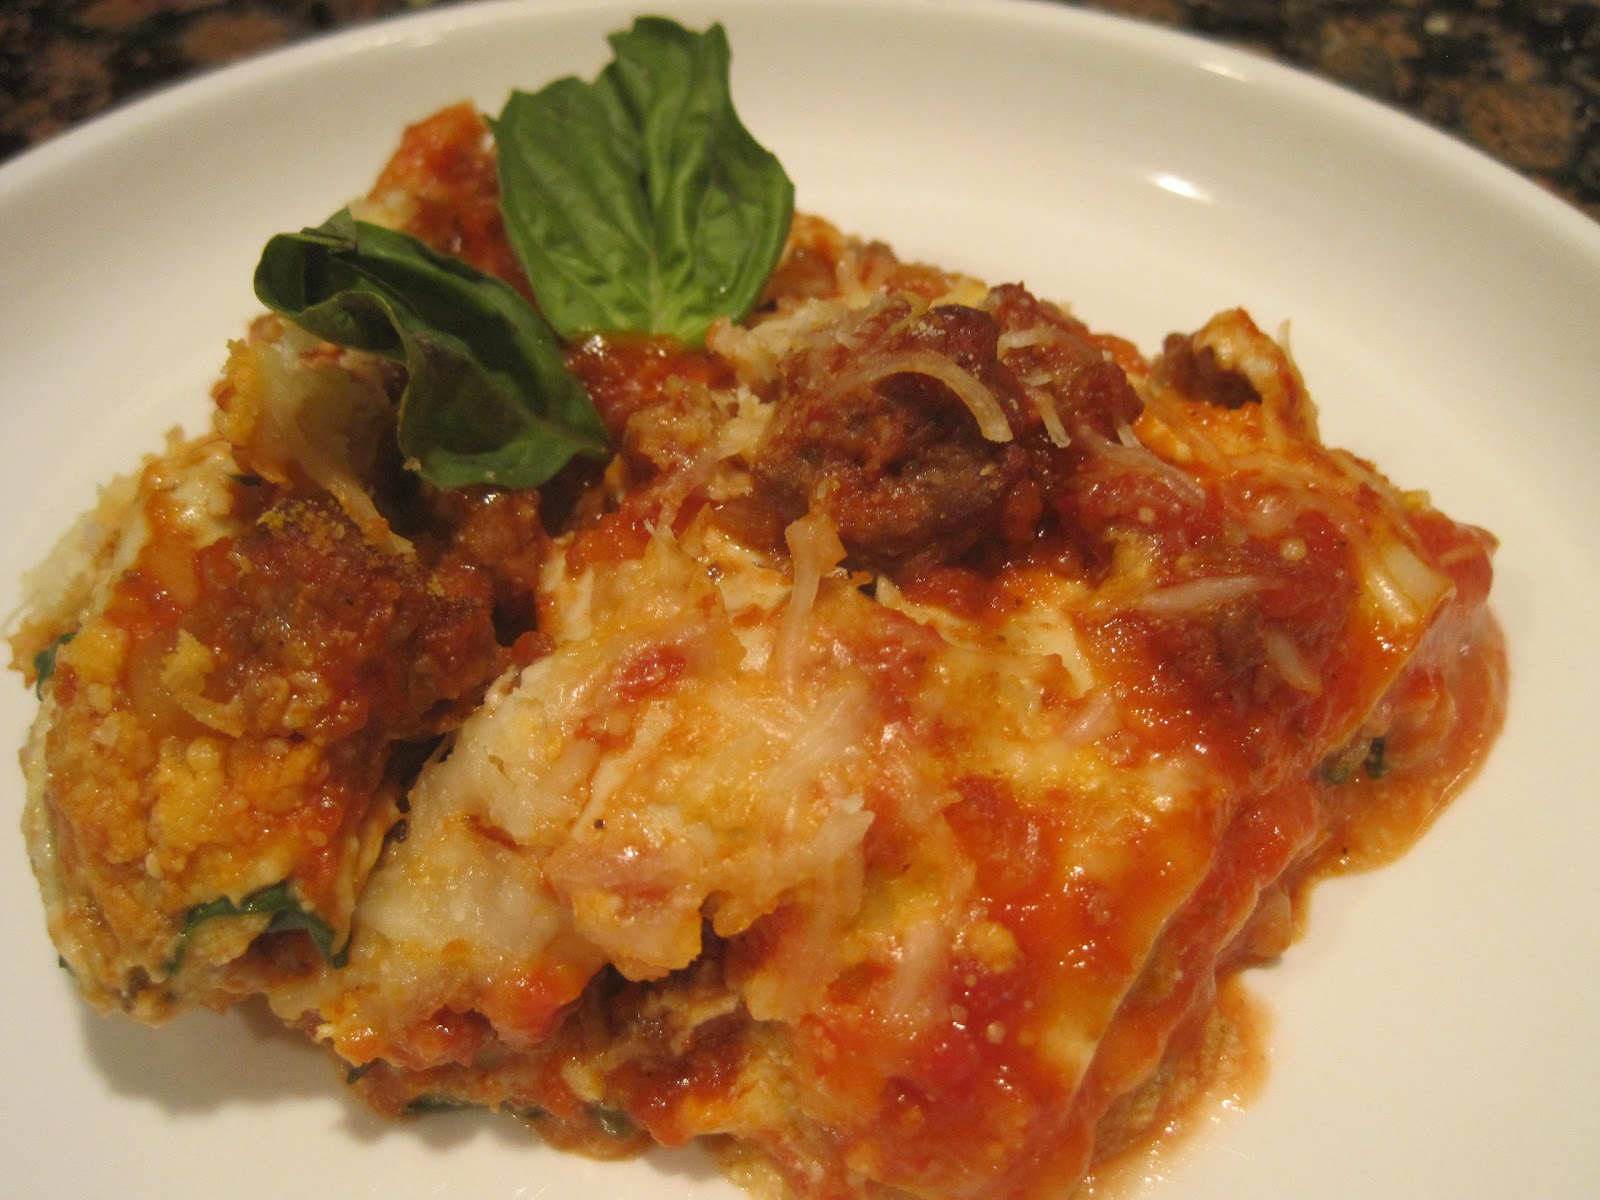 Recipes Re-Mixed: Quick Four Cheese Lasagna